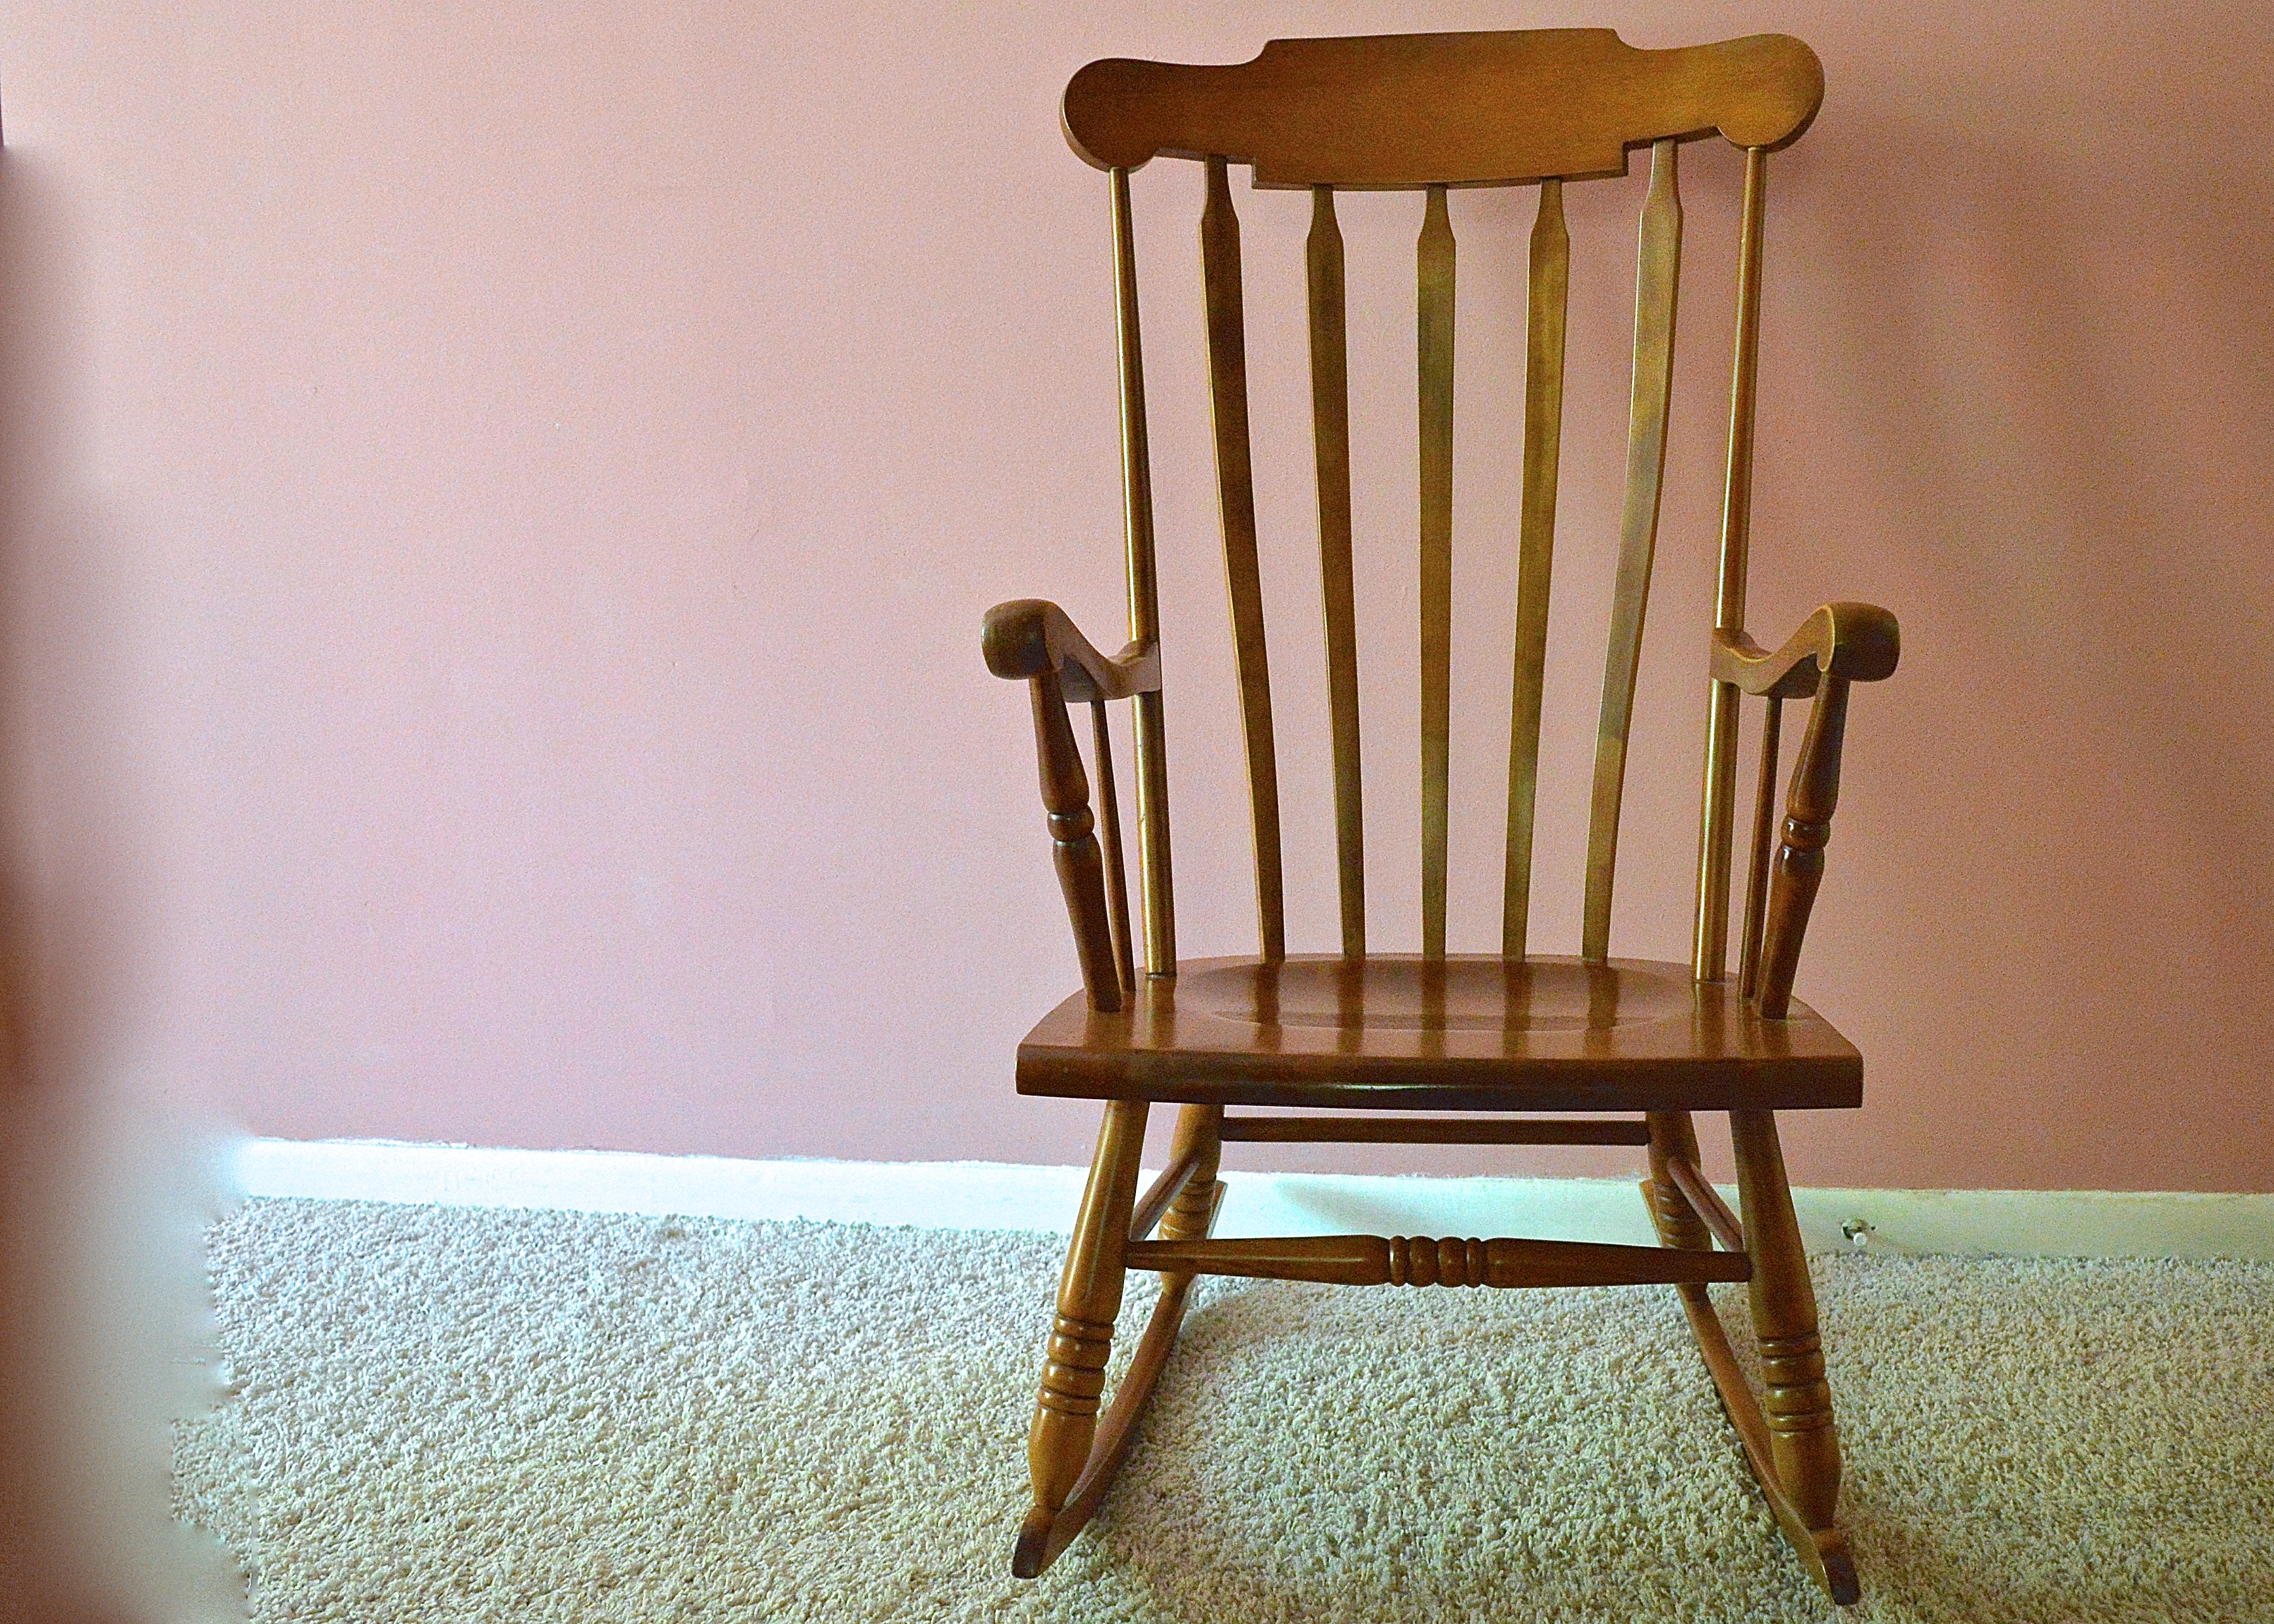 tell city chairs pattern 4222 iron horse colonial style rocking chair by company ebth